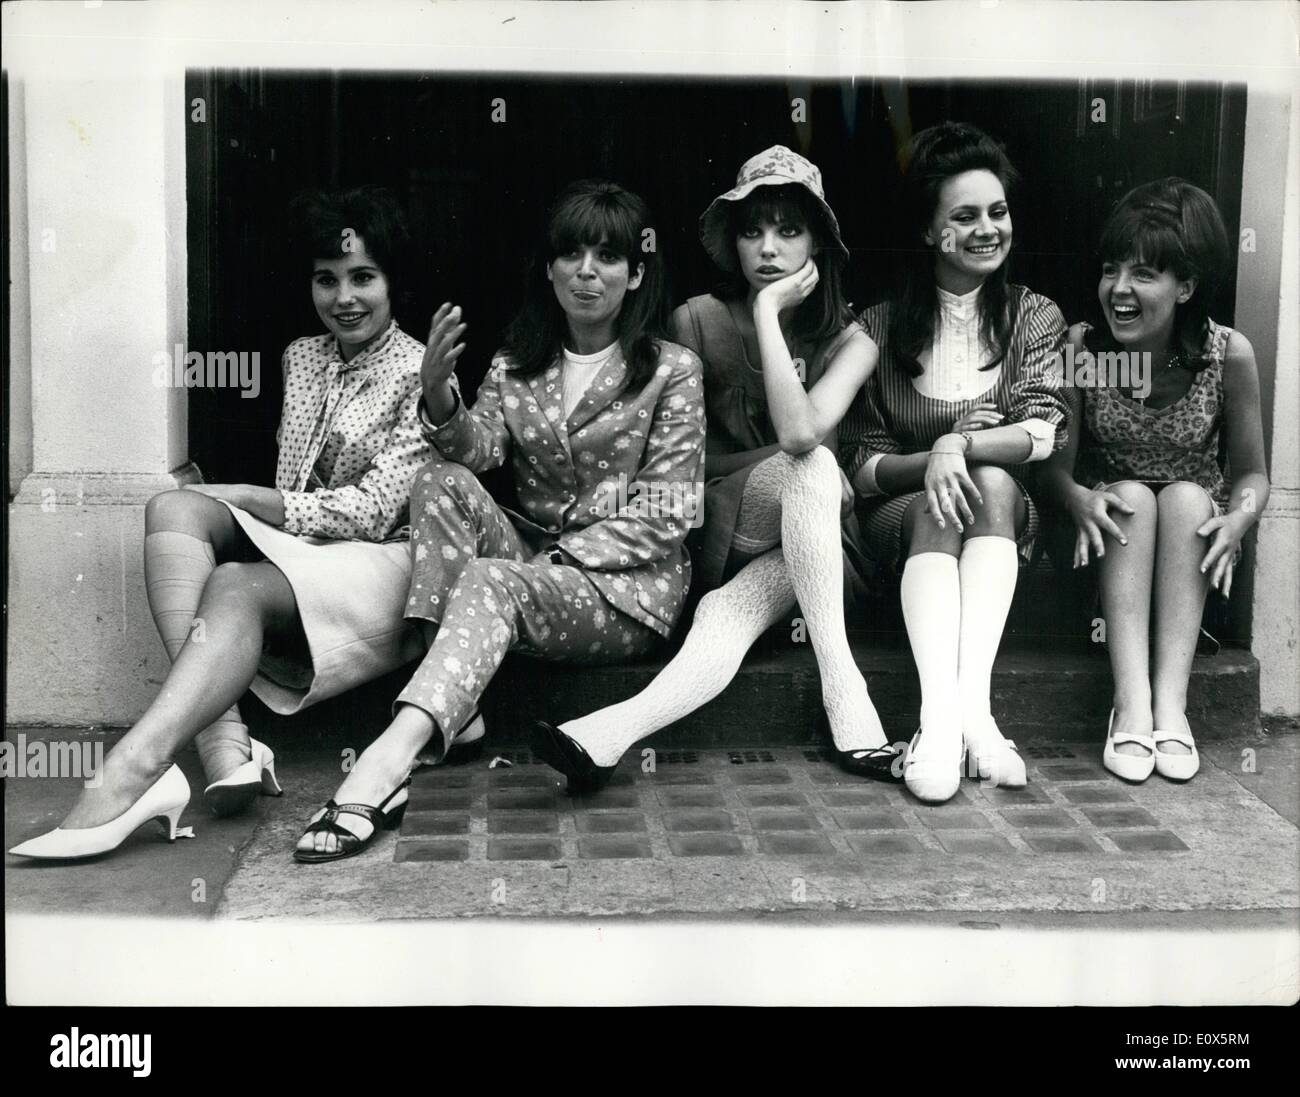 Jun. 06, 1965 - The Five Naughtiest Schoolgirls In Britain: A 250,000 gamble is being waged on five pretty faces. For they are the girls, all in their teens or early twenties, in the new musical ''Passion Flower Hotel''. The story, based on a best selling novel, is slightly eyebrow-raising even in these days. The five girls endeavor to run a brothel at their public school. Photo Shows: The five ''Pasion Flower'' girls (L to R) Karin Fernald, Jean Muir, Jane Birkin, Francesca Annis and Pauline Collins. - Stock Image